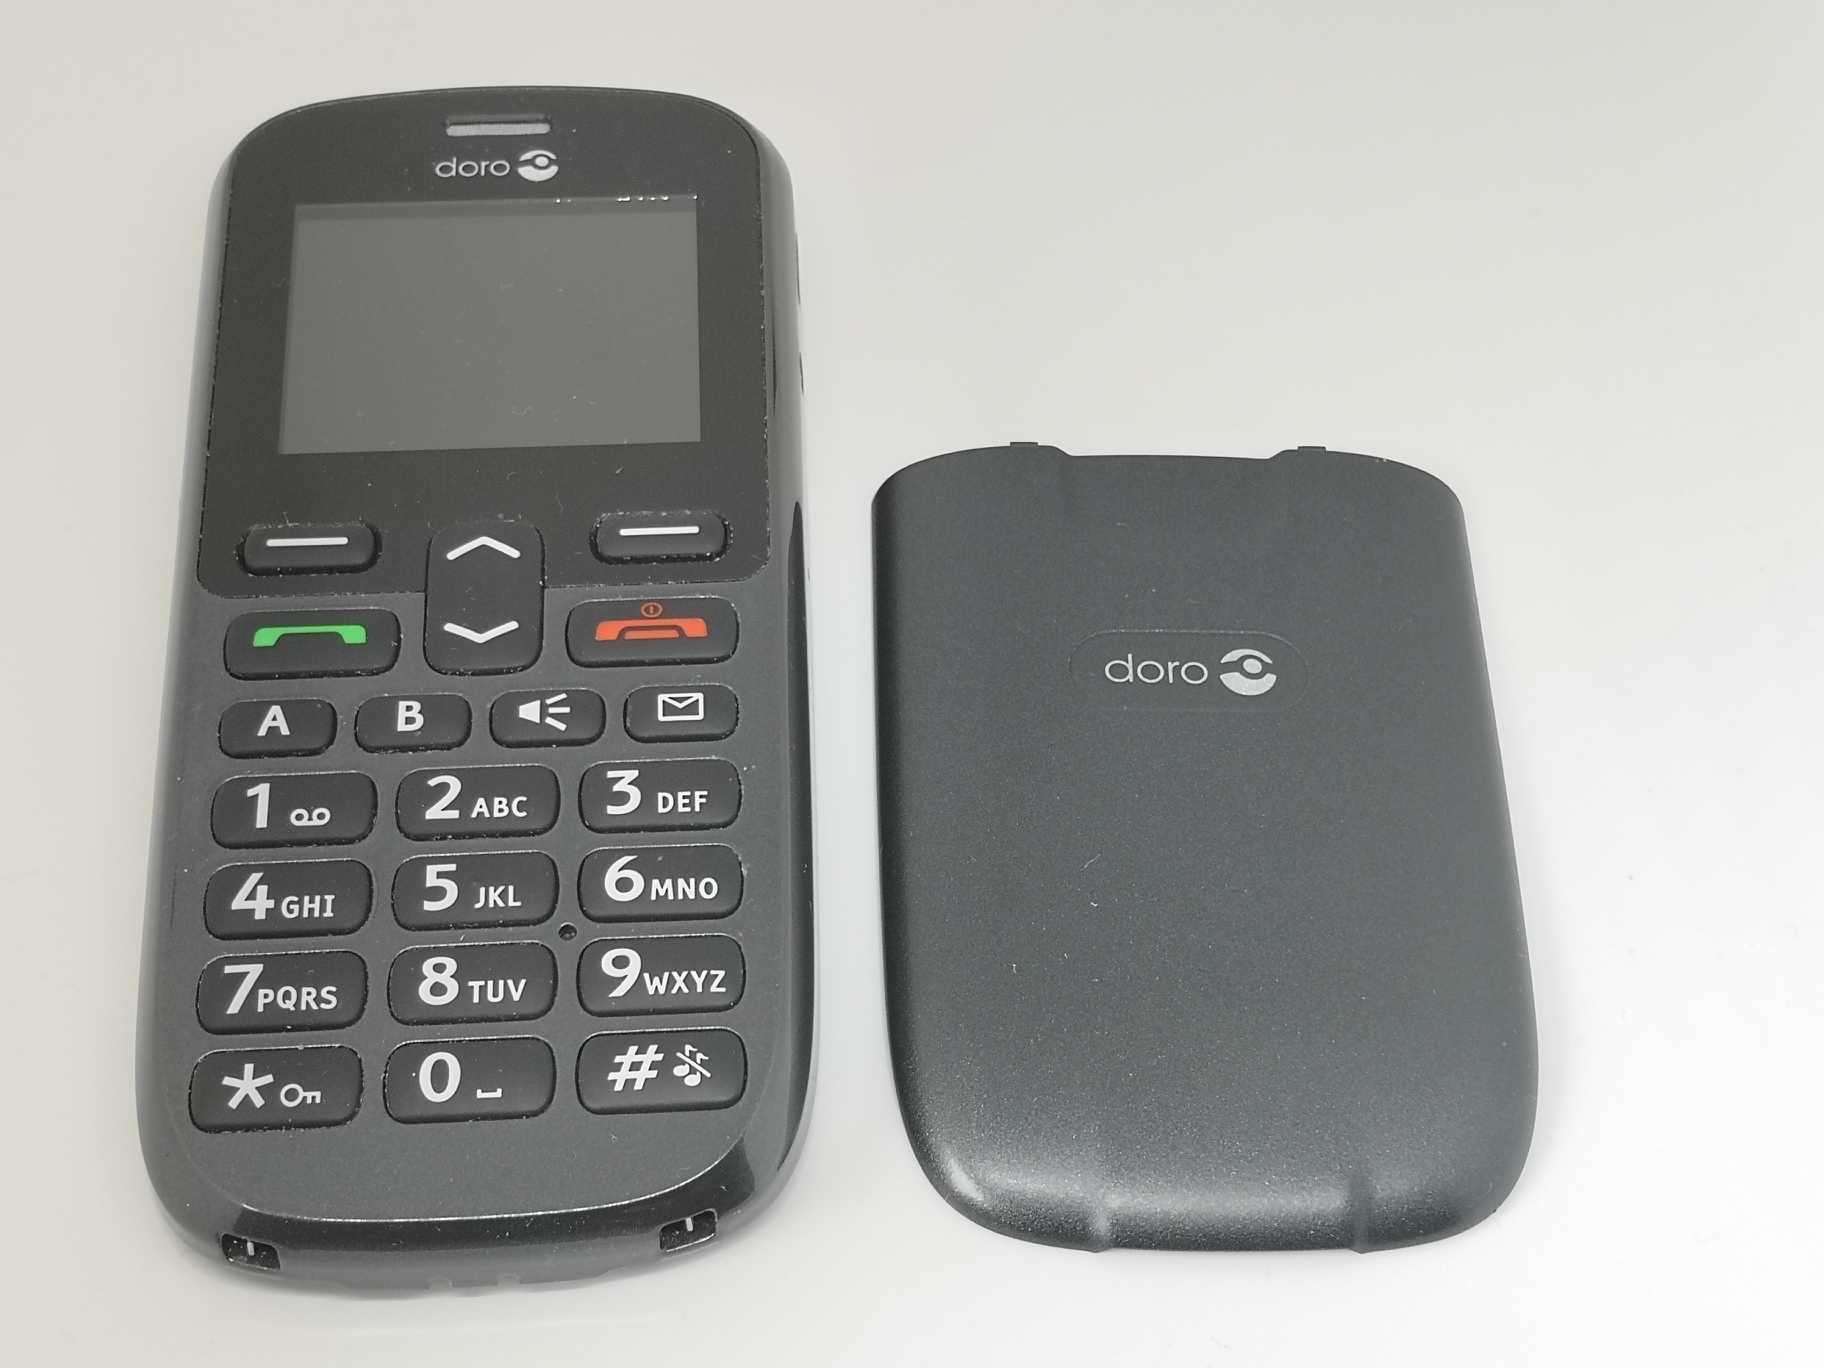 Doro PhoneEasy 508 Review - Small Phone, Big Buttons Mobile Phone